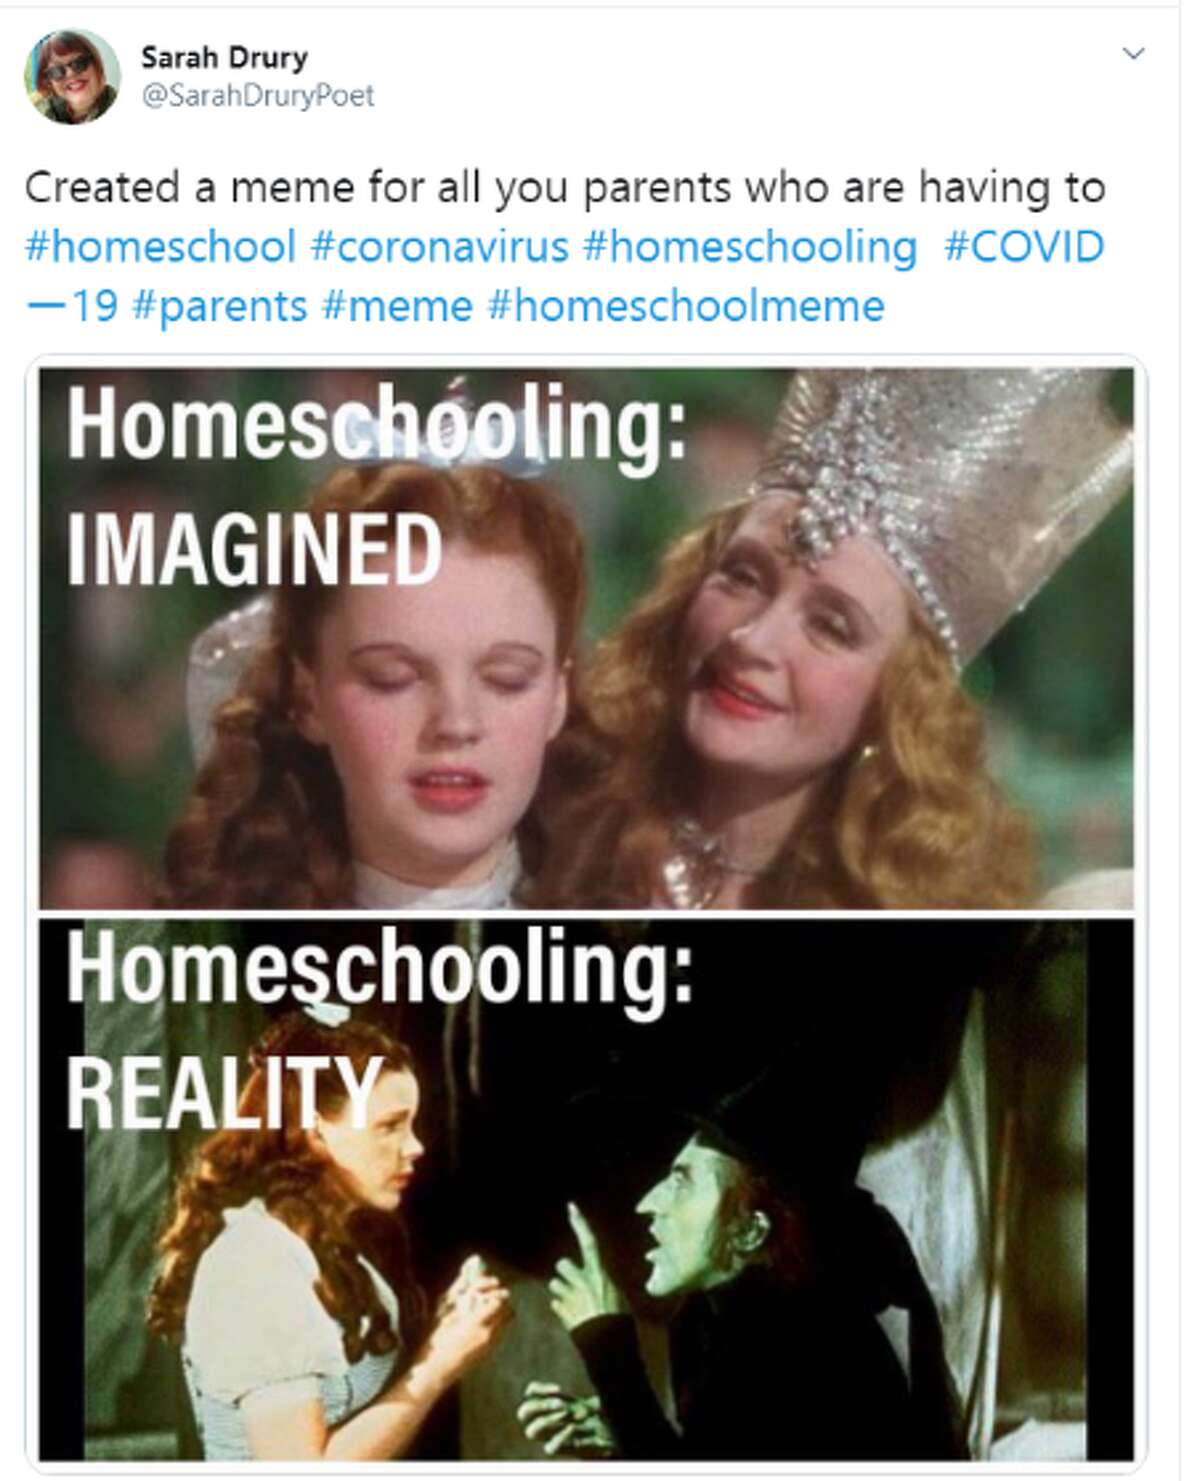 These homeschooling memes are just the ticket to show what parents are really feeling about teaching their kids at home amid the coronavirus outbreak.